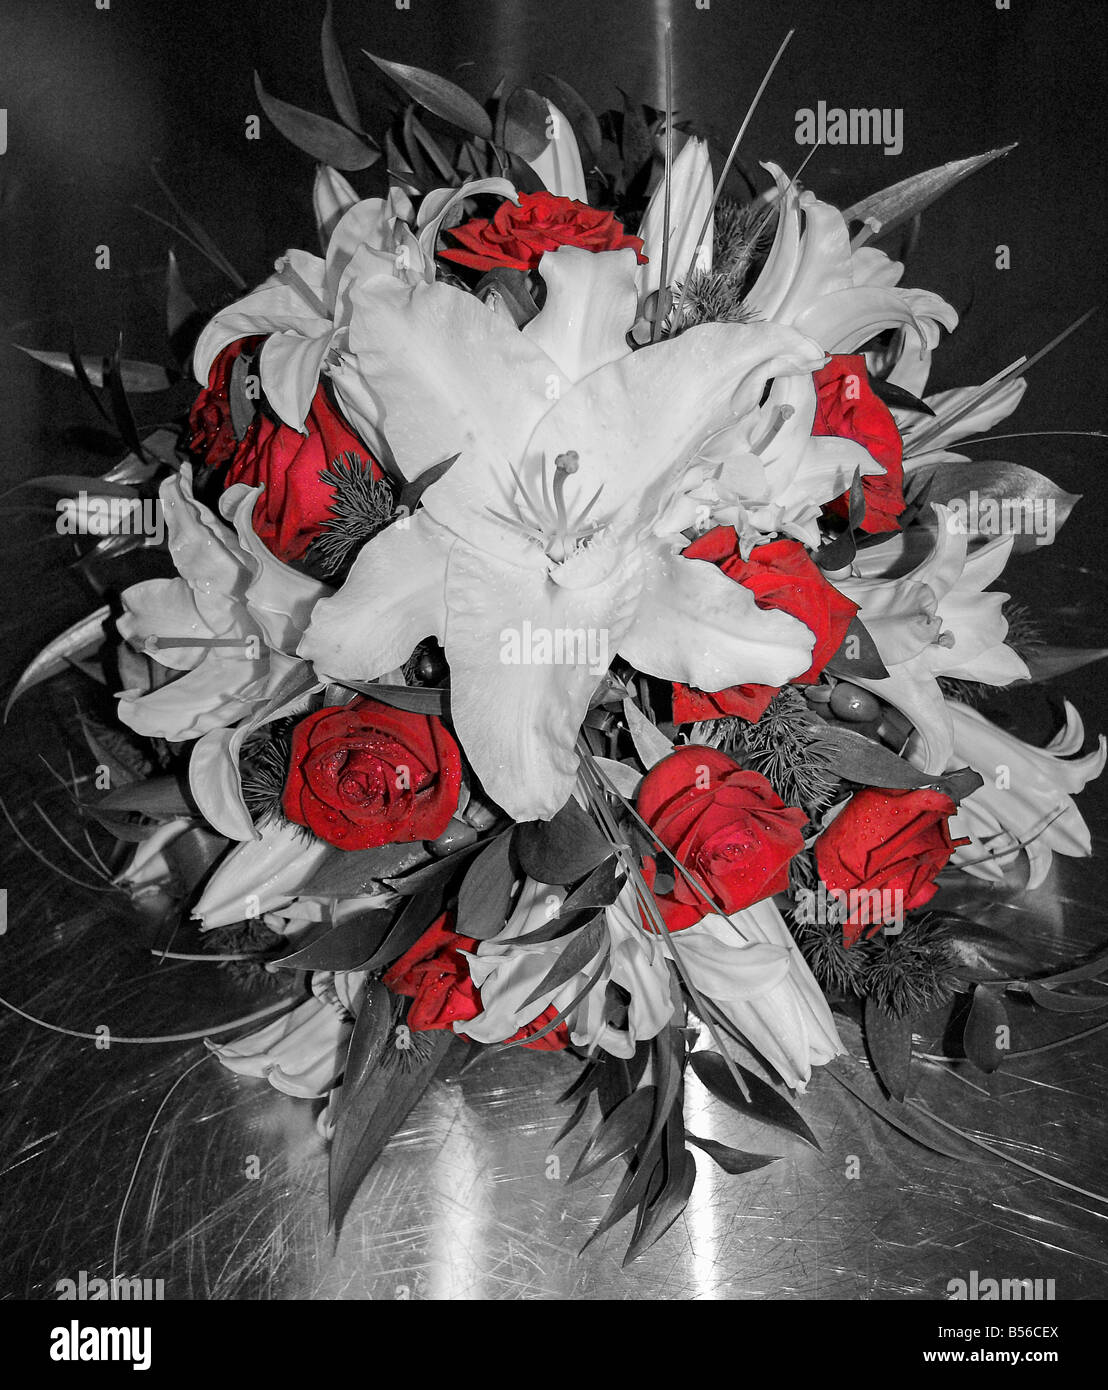 Lilly And Rose Wedding Bouquet Black And White With Red Colour Stock Photo Alamy